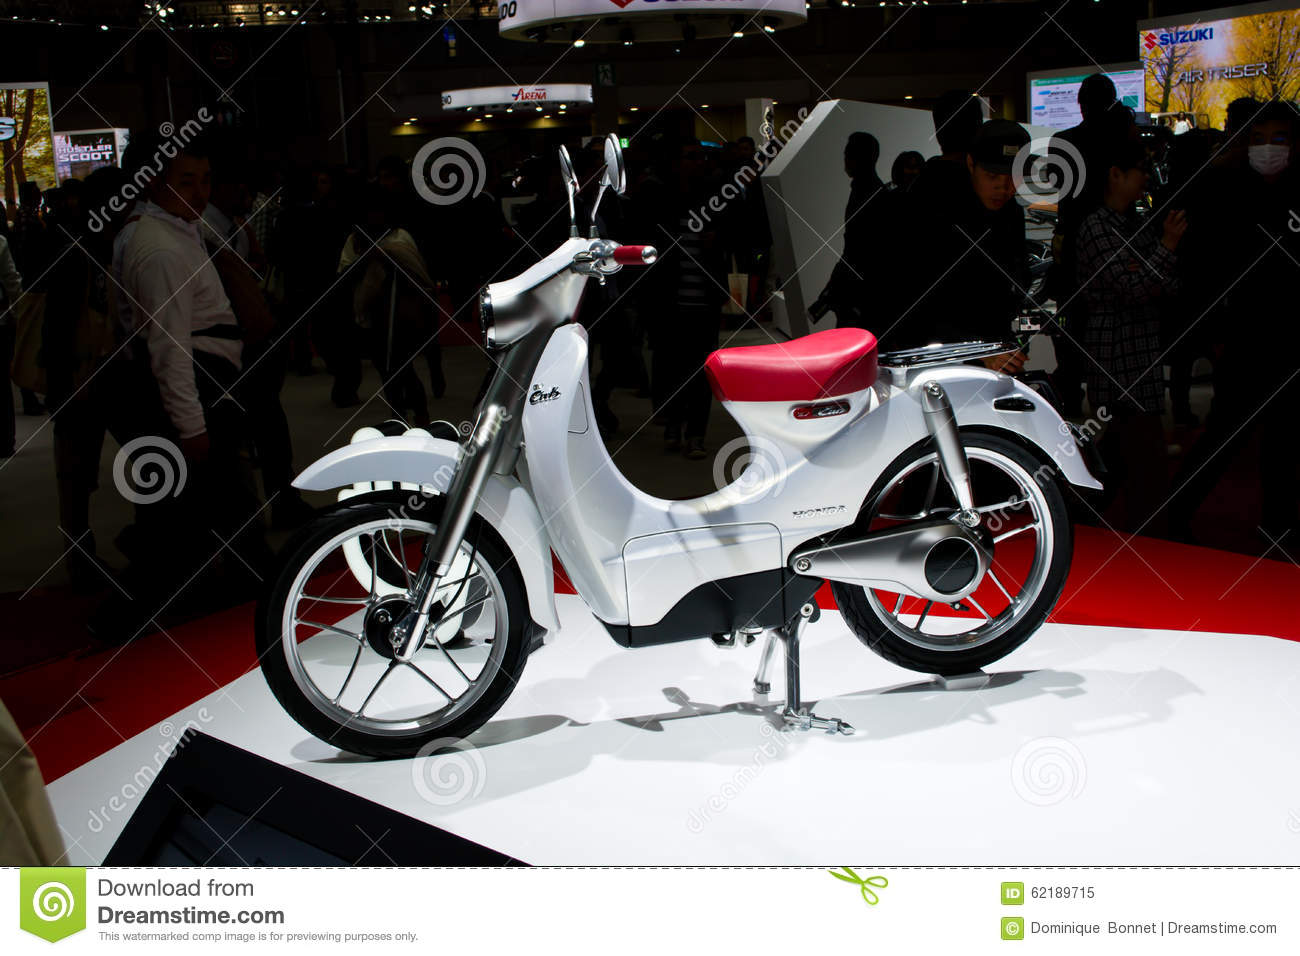 Honda ev cub scooter editorial image image of battery 62189715 download comp publicscrutiny Choice Image